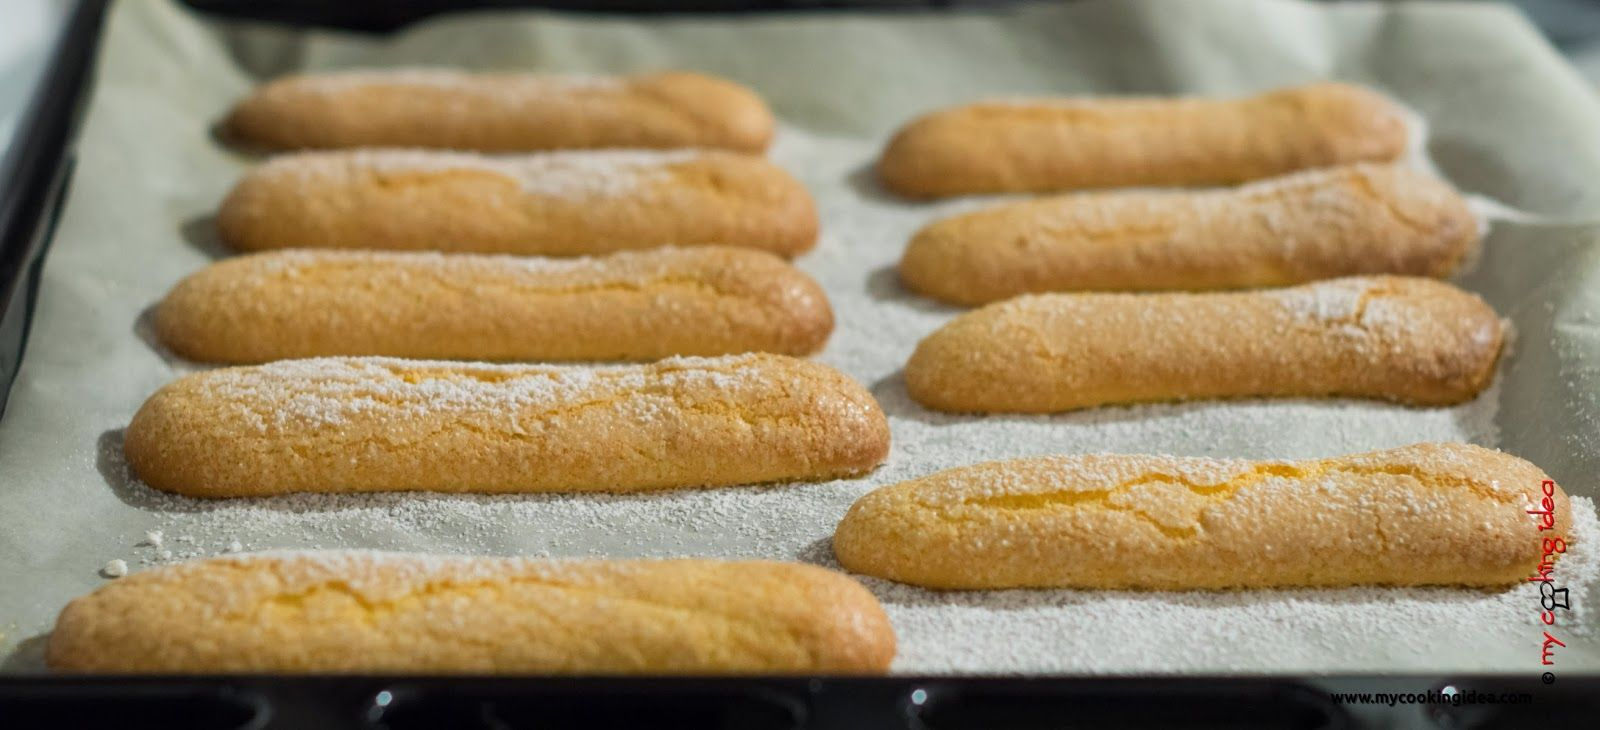 Savoiardi biscotti sardi di fonni my cooking idea for Cucinare hot dog